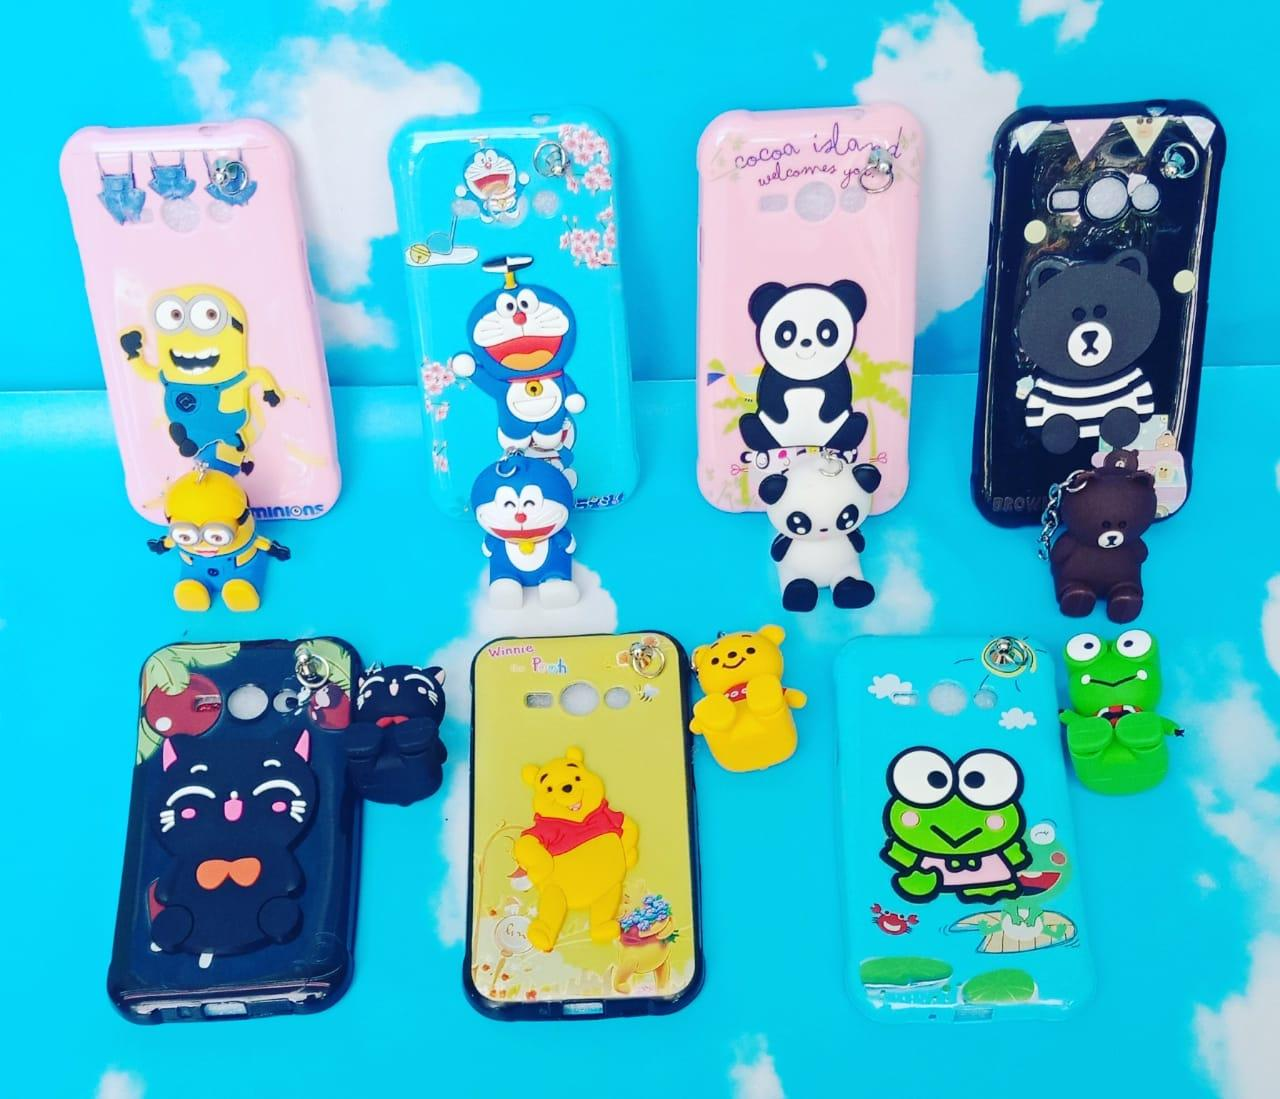 Case Softcase Karakter Samsung Galaxy J1 Ace Plus Gantungan Pm2902 Lazada Indonesia